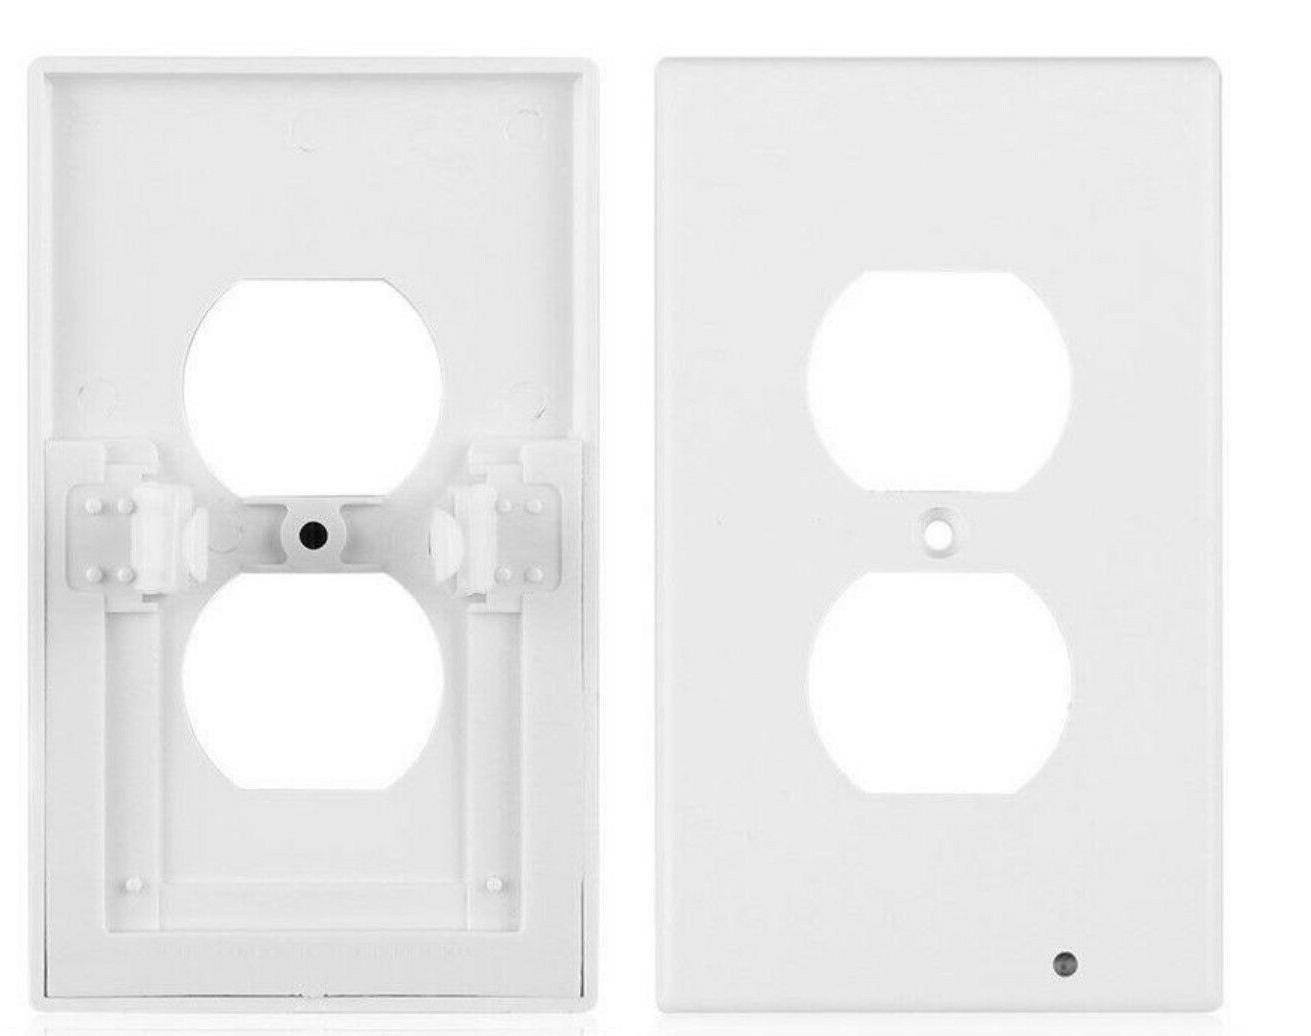 2x Wall Led Cover Duplex With Light Sensor